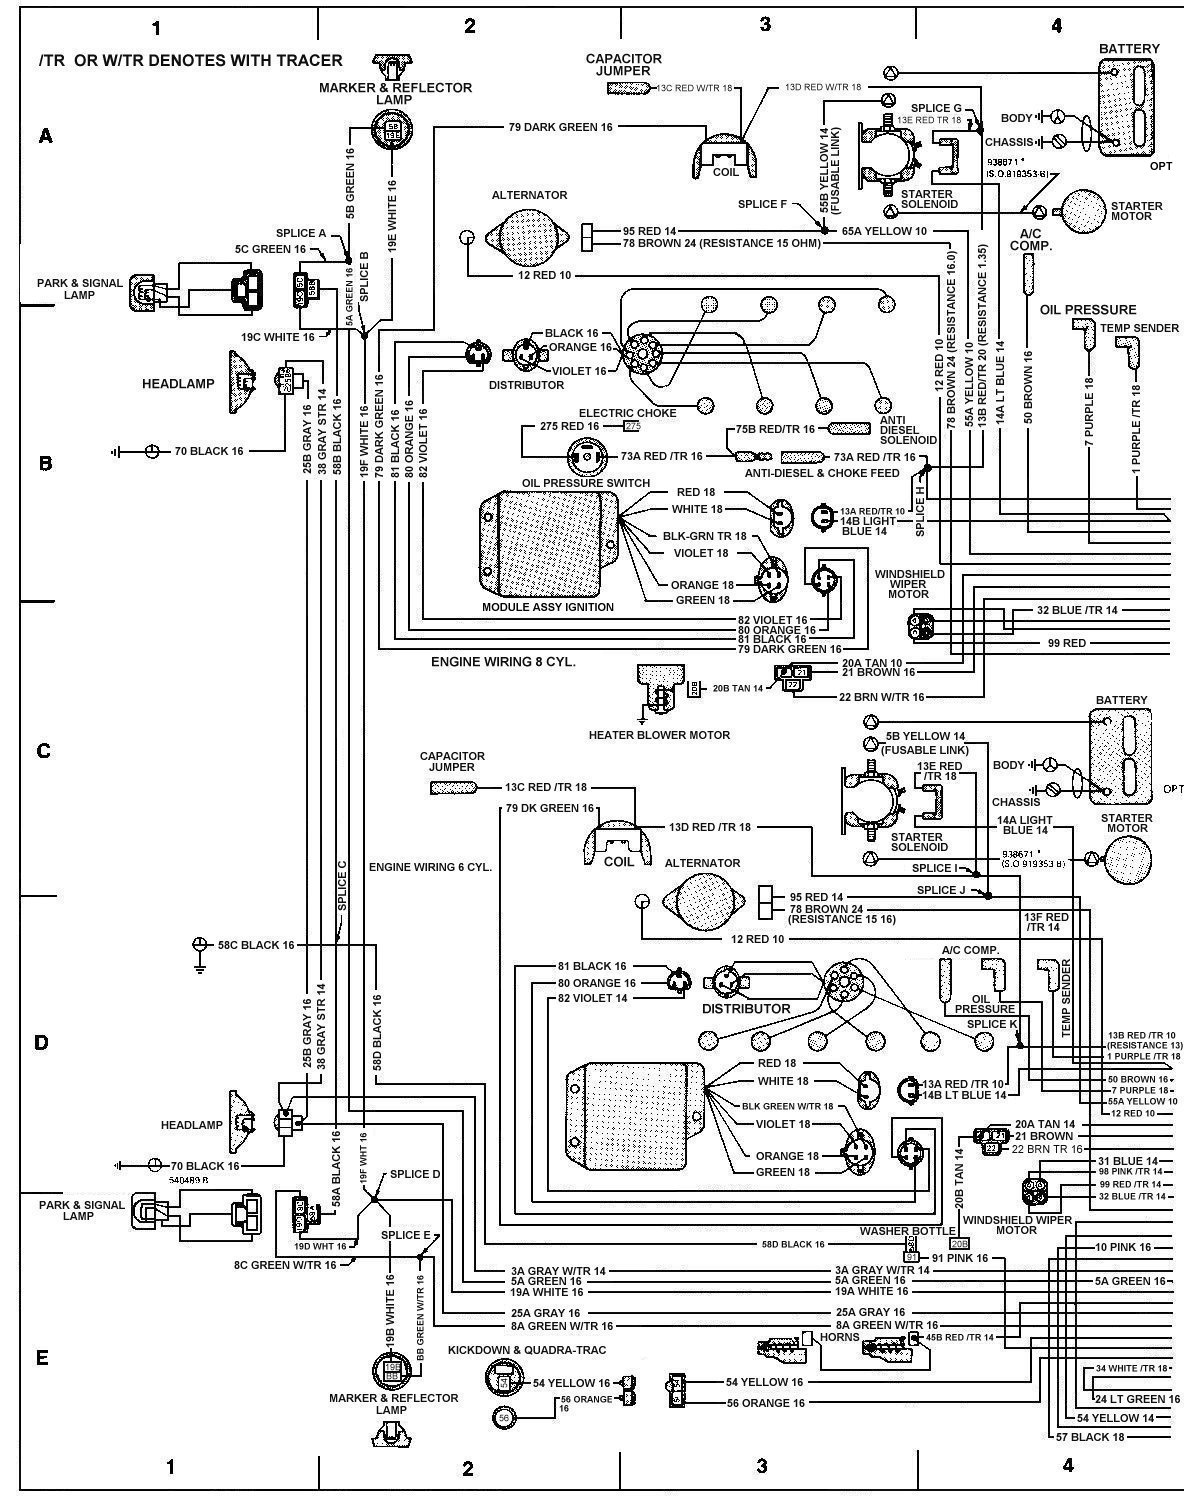 tom oljeep collins fsj wiring page rh oljeep com 1984 Jeep CJ7 Wiring-Diagram 87 Jeep Wrangler Wiring Diagram